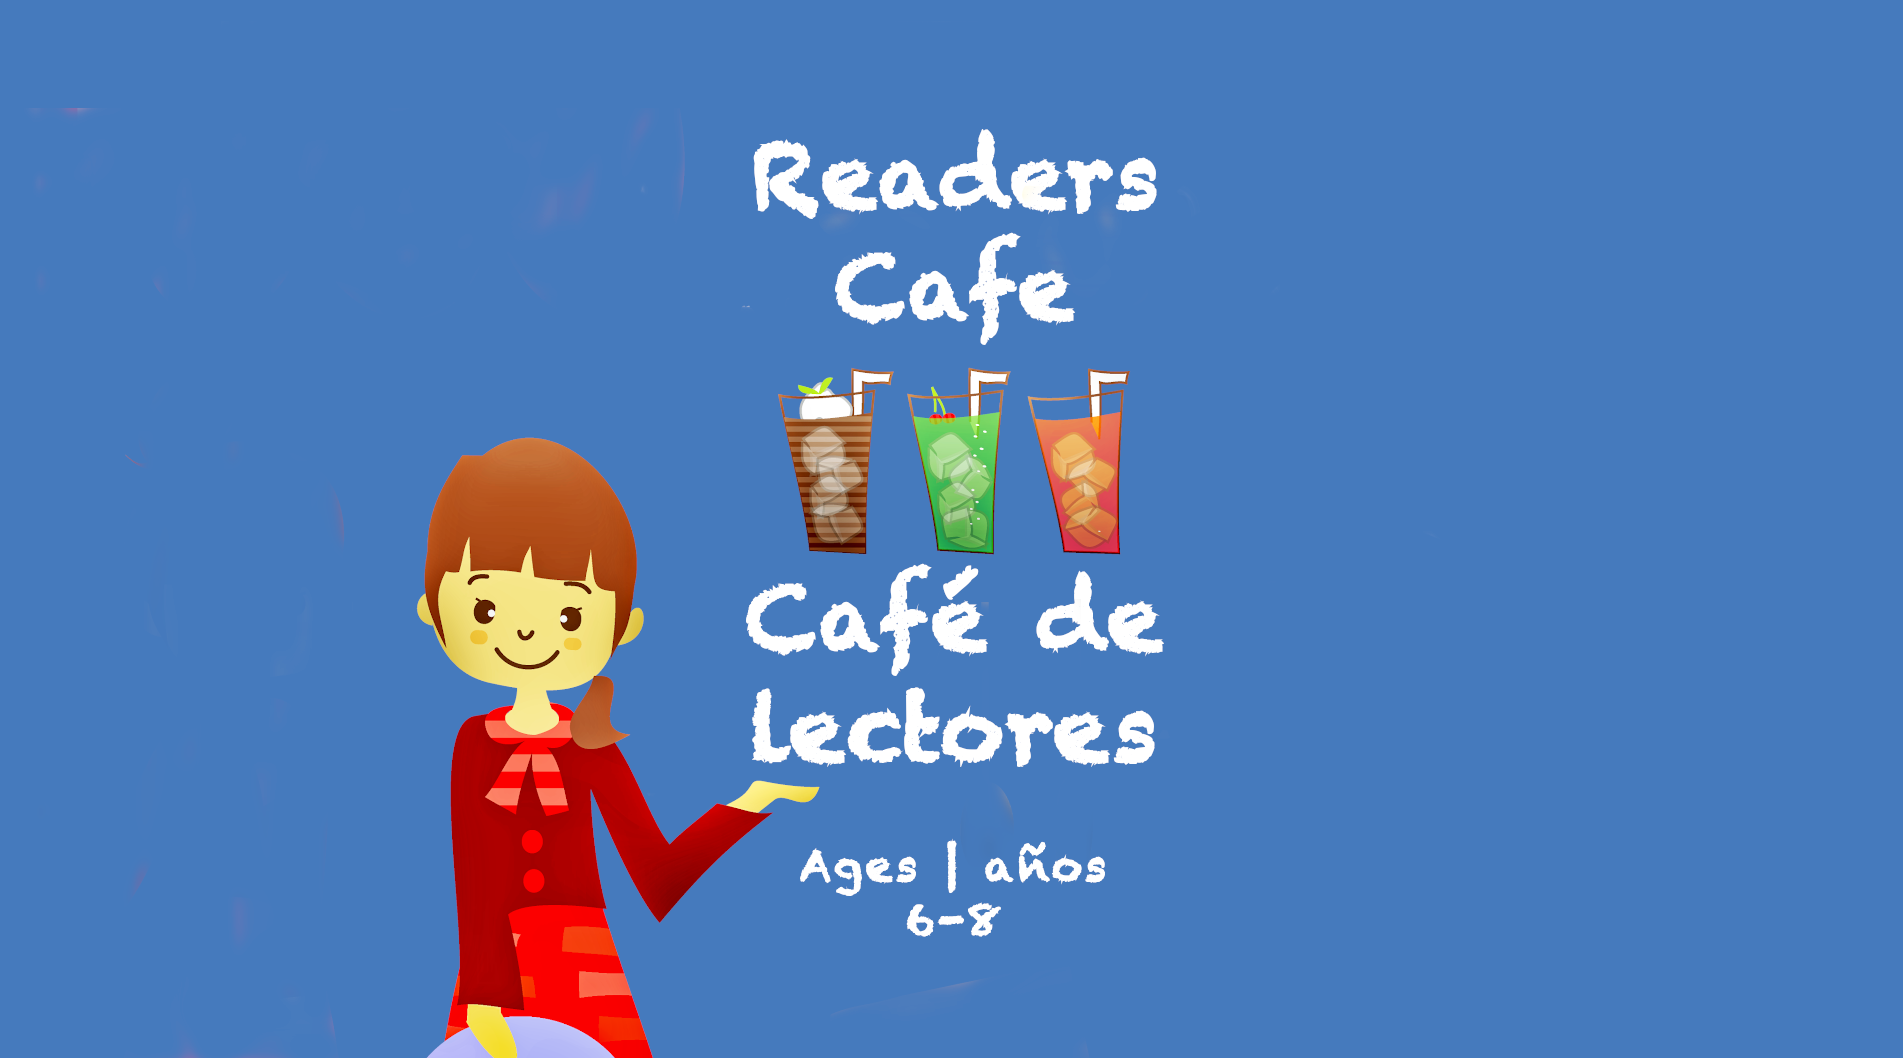 Weekly Themes #16 Reader's Cafe for 6-8 year olds